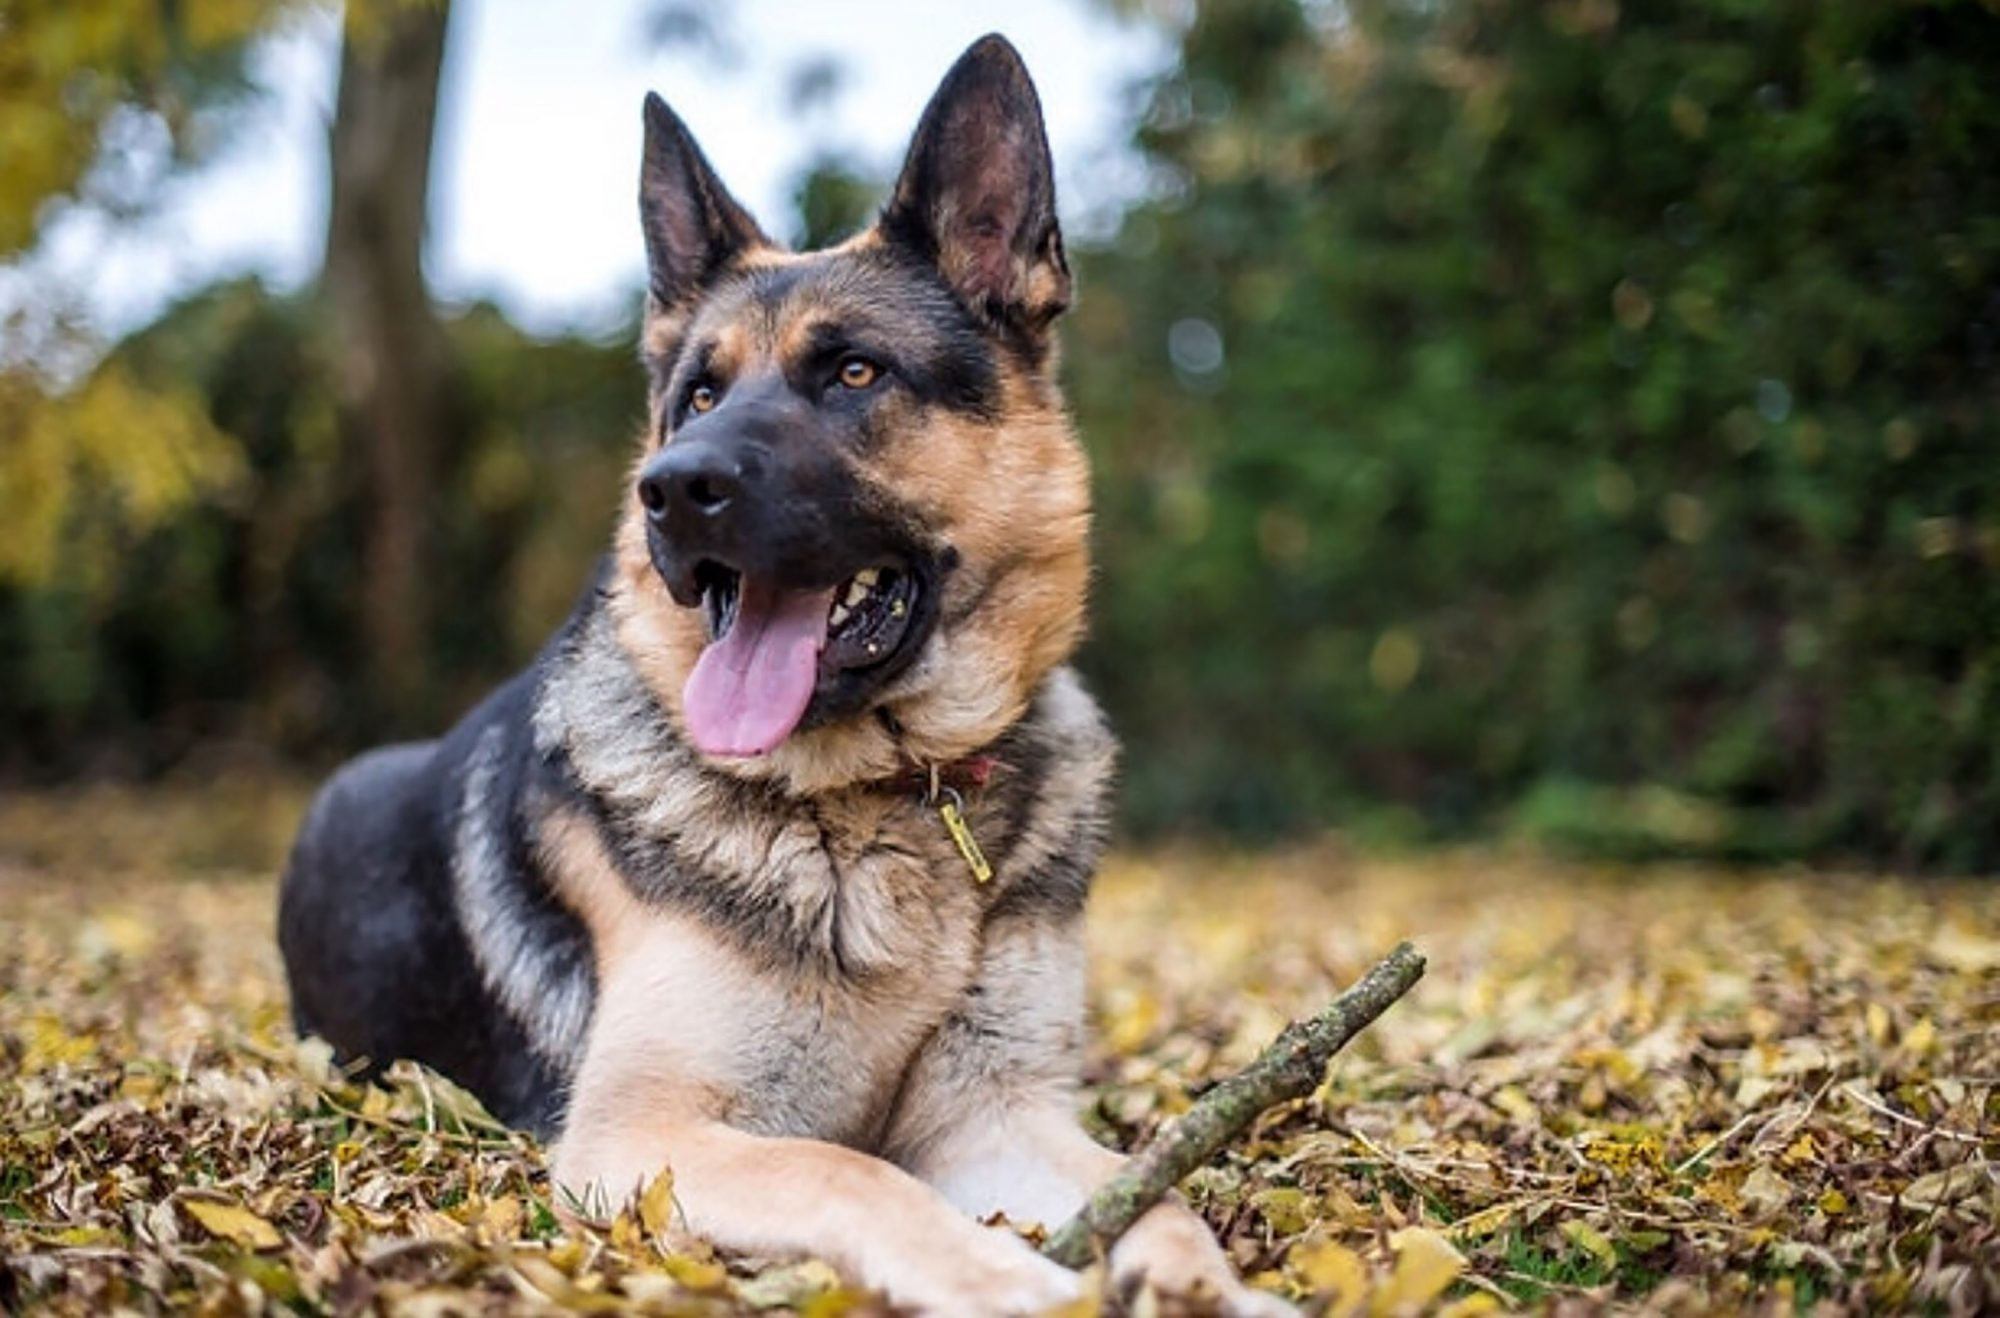 German Shepherd lying in the leaves holding a stick